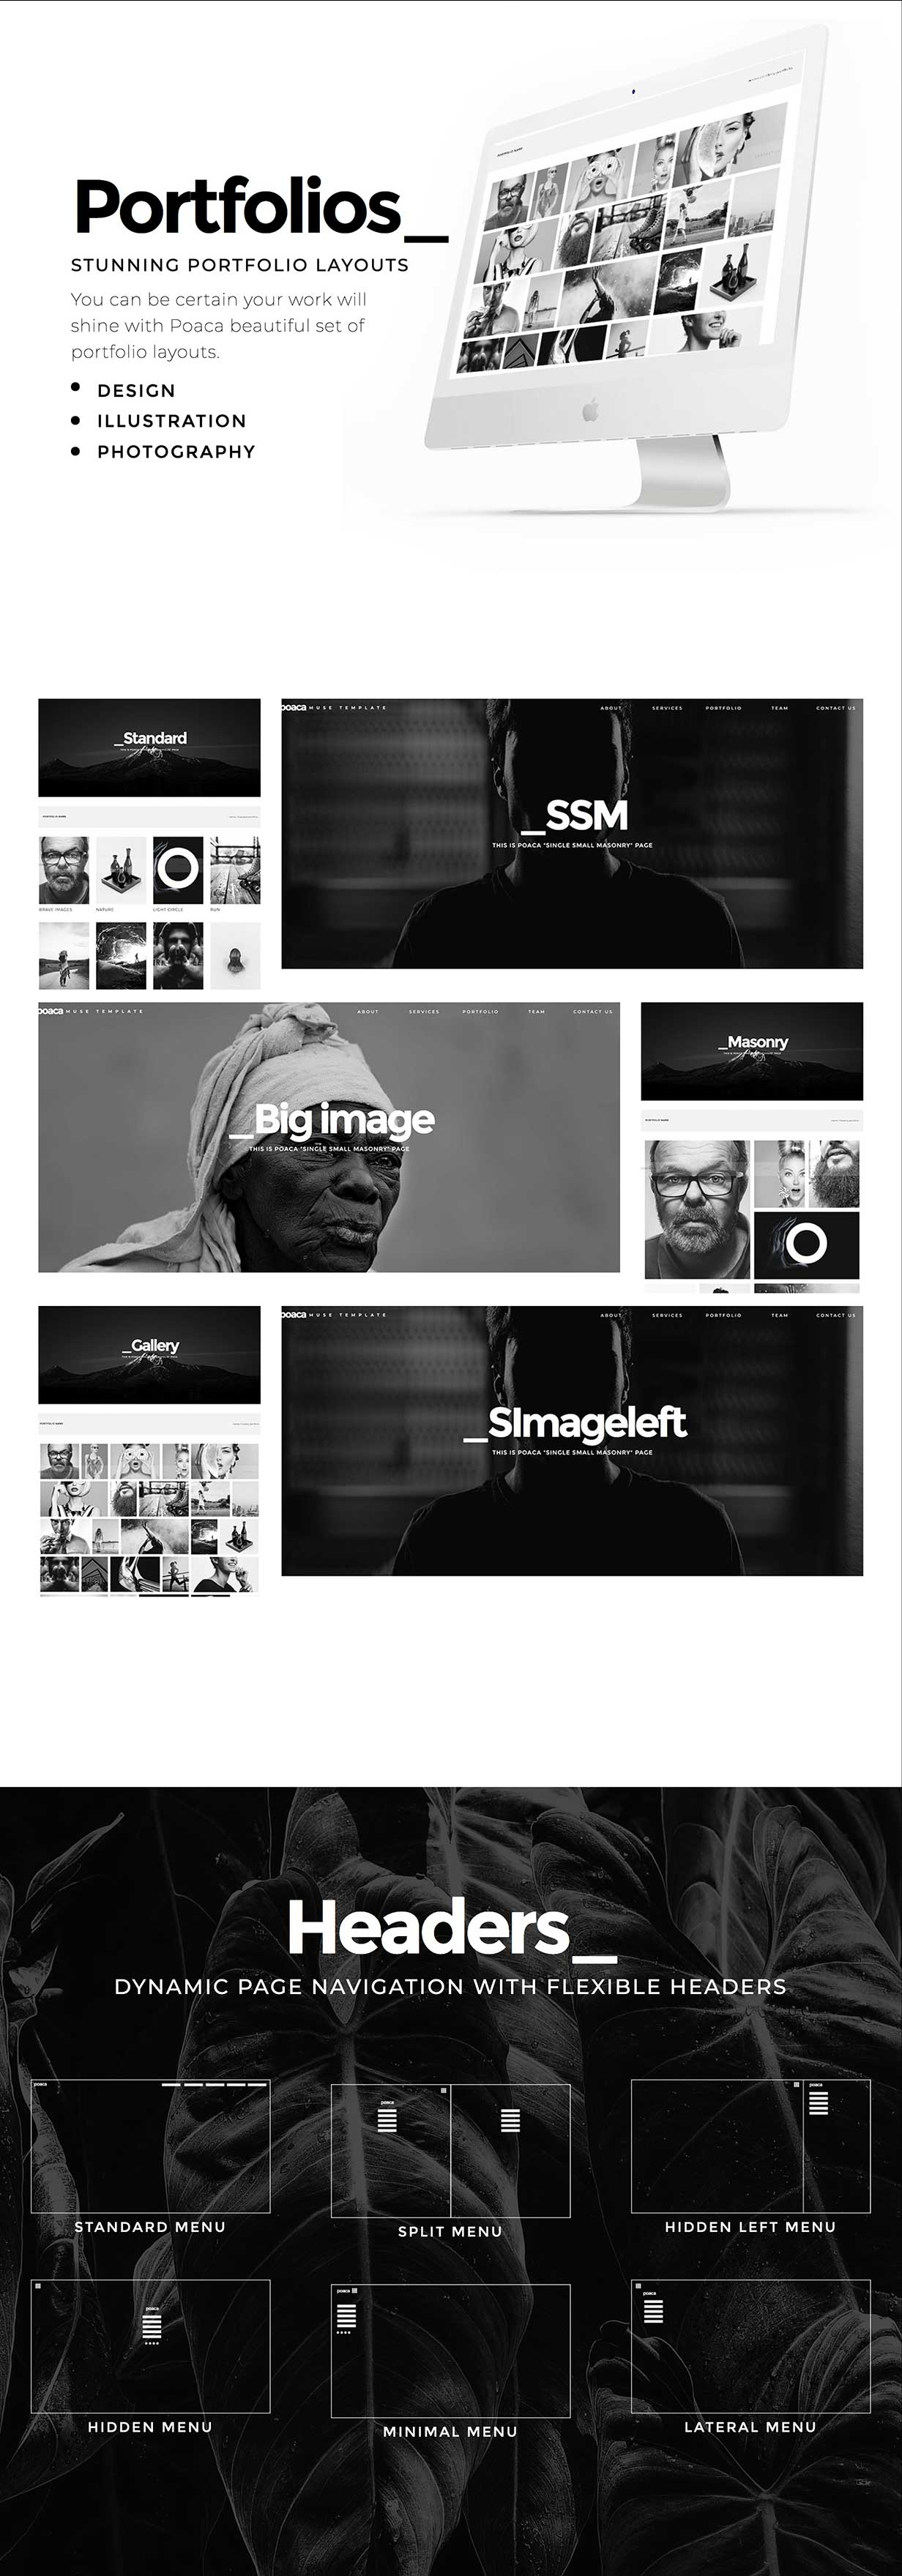 Poaca Muse Template - 2